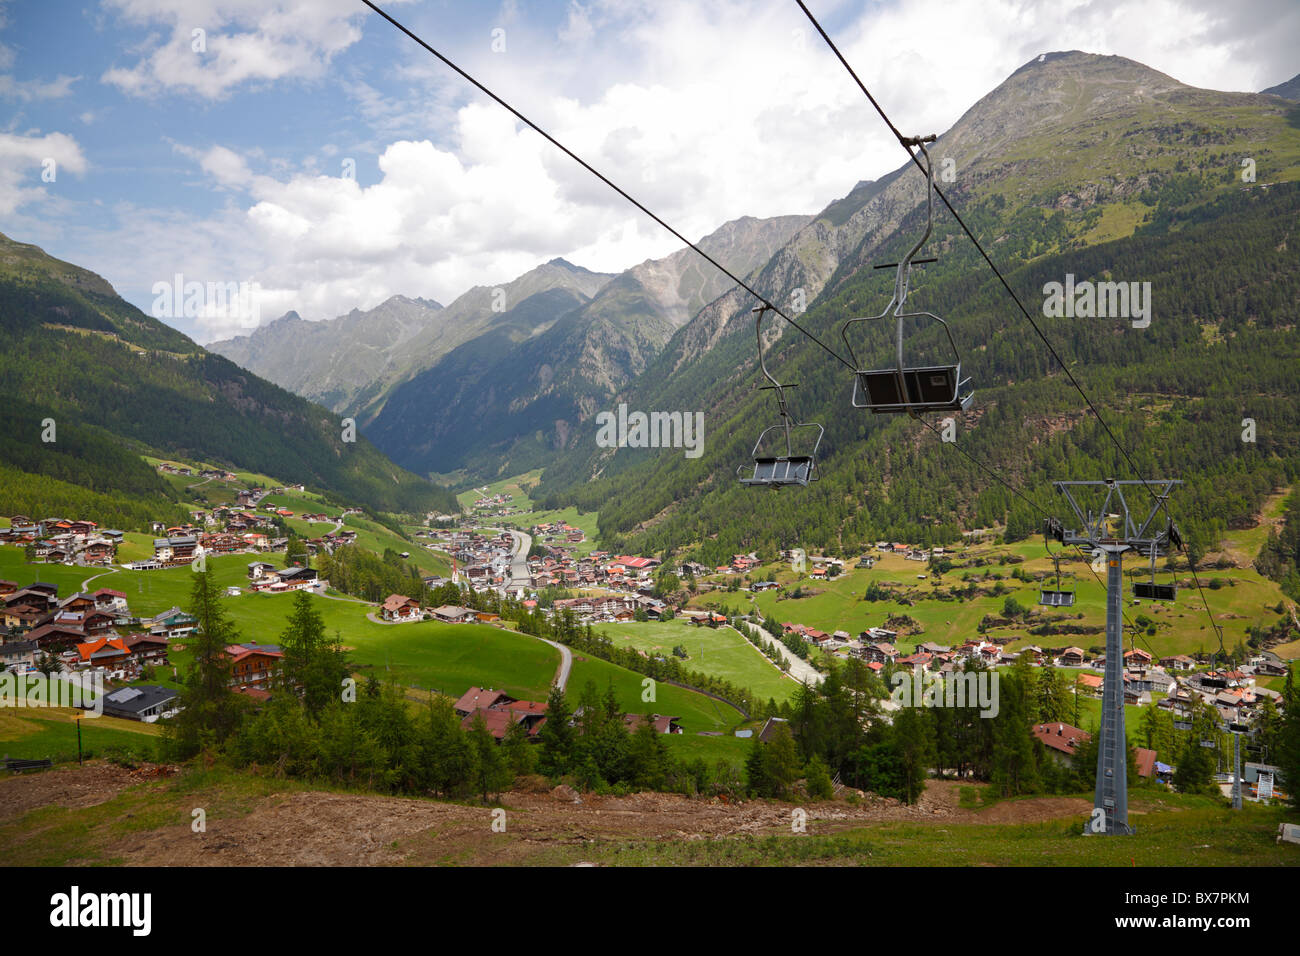 mountain-view-over-slden-tztaltyrol-aust